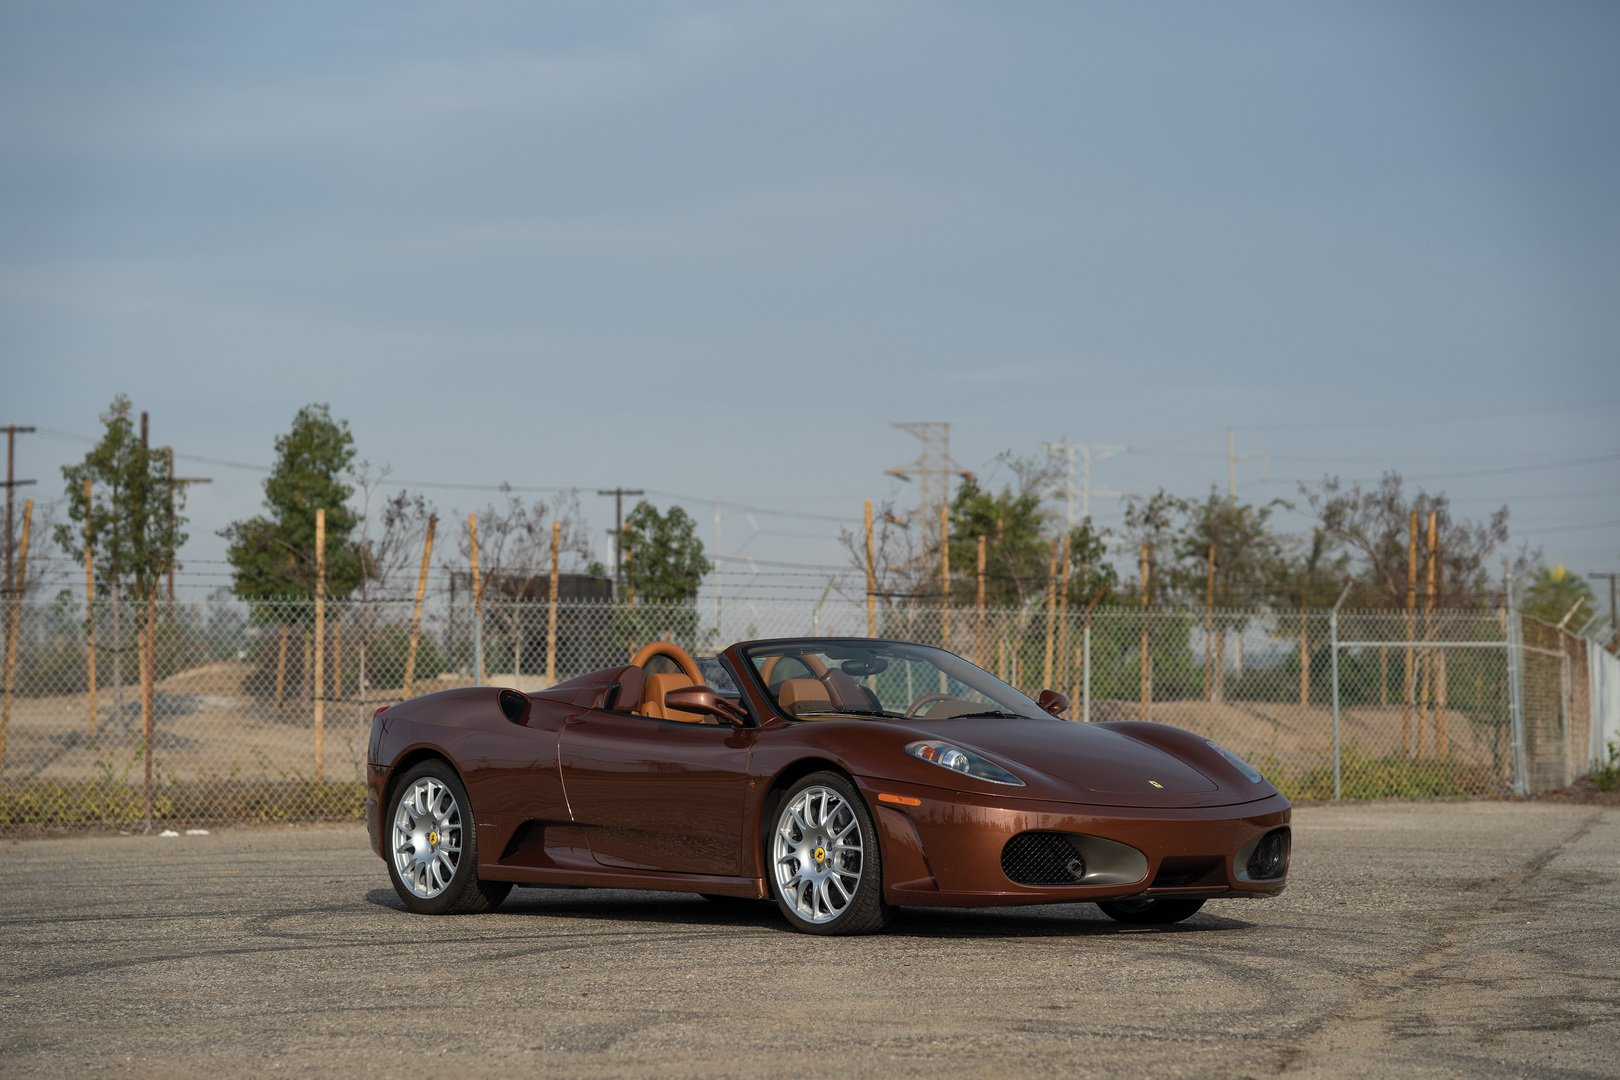 Ferrari F430 Spider in brown Classic Marrone color (1)